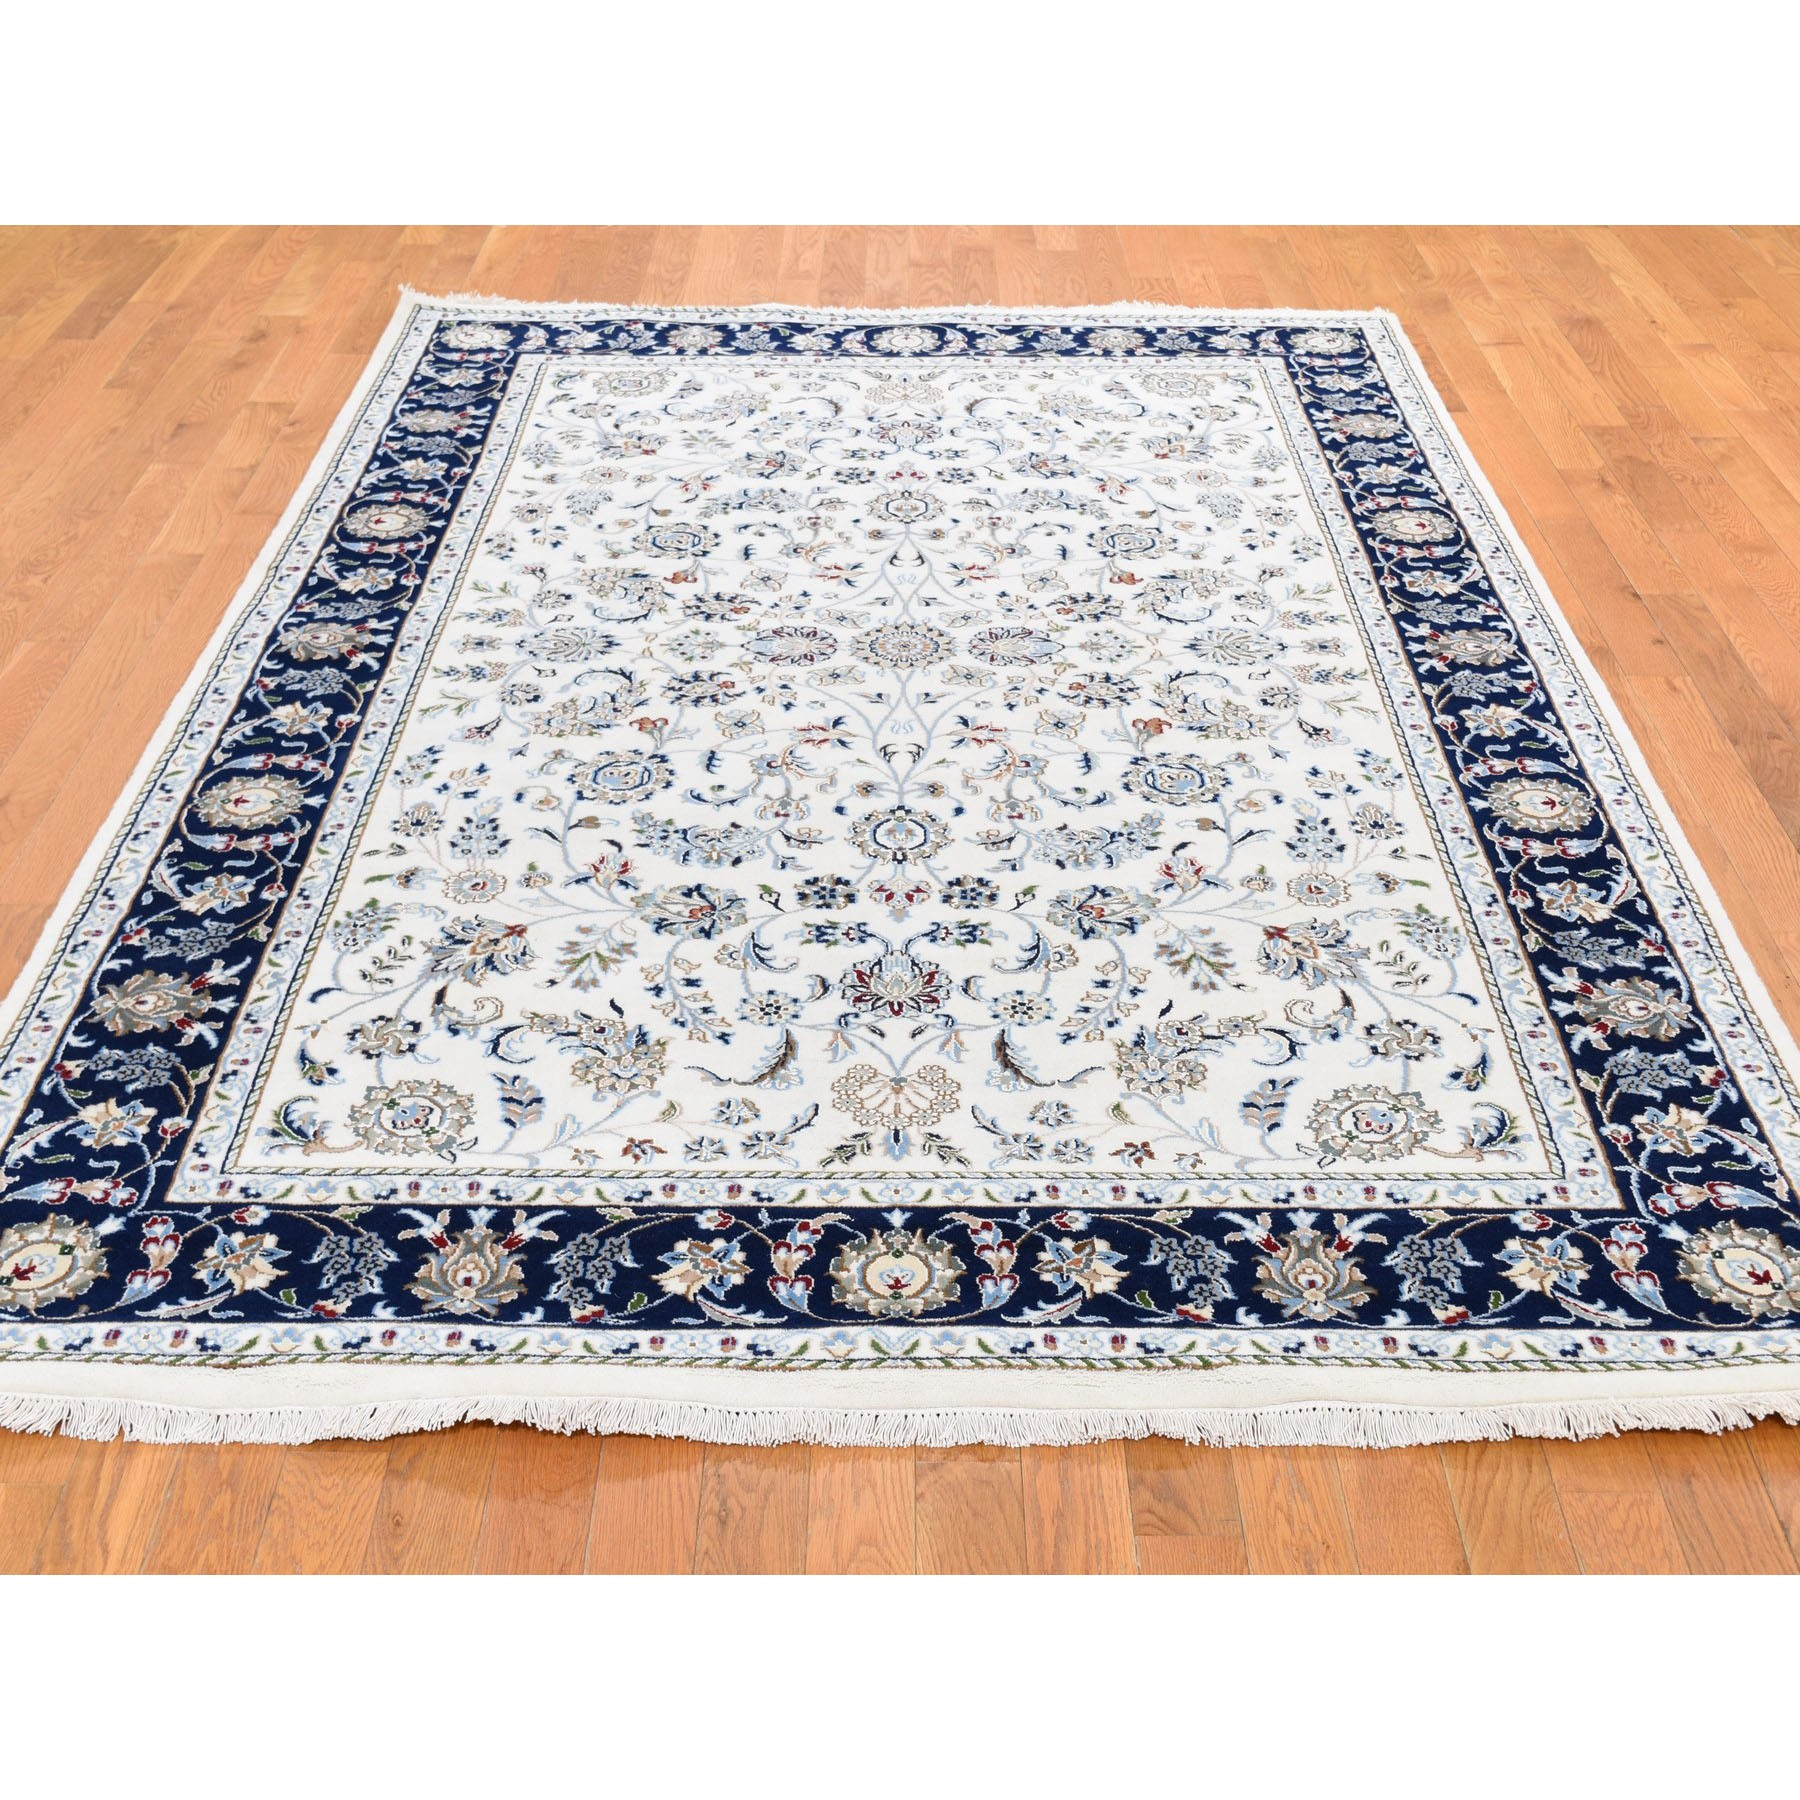 """6'x8'10"""" Wool And Silk 250 KPSI All Over Design Ivory Nain Hand Knotted Oriental Rug"""